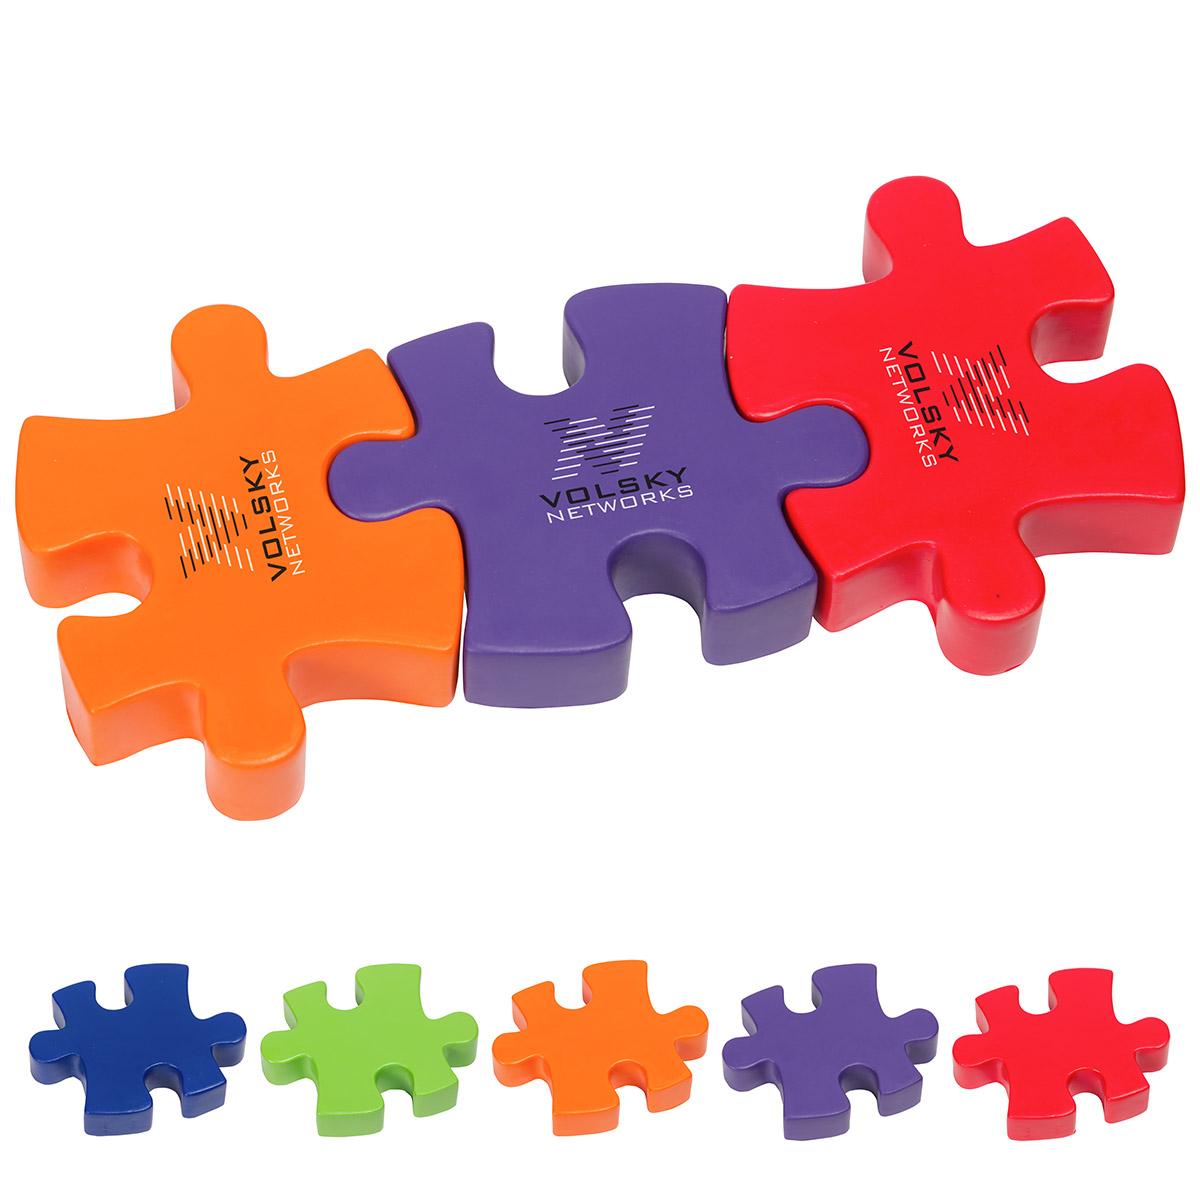 3-Piece Connecting Puzzle Set, LGS-3P17 - 1 Colour Imprint